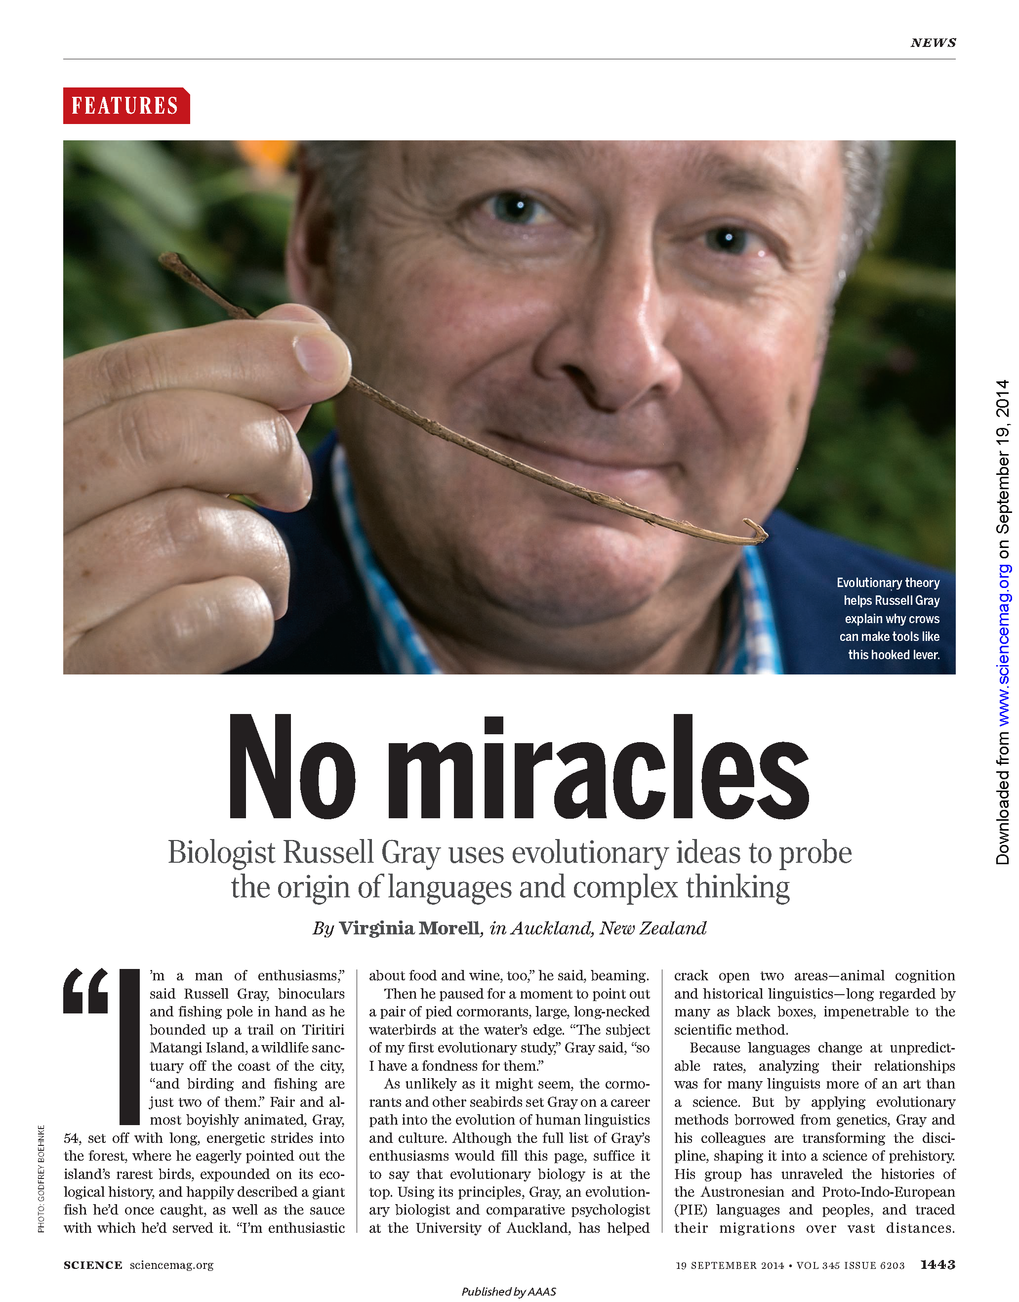 """No miracles"": This is the headline to Virginia Morell's portrait of Russell Gray, Director of the Department of Lingusitic and Cultural Evolution, in Science (September, 19th)."